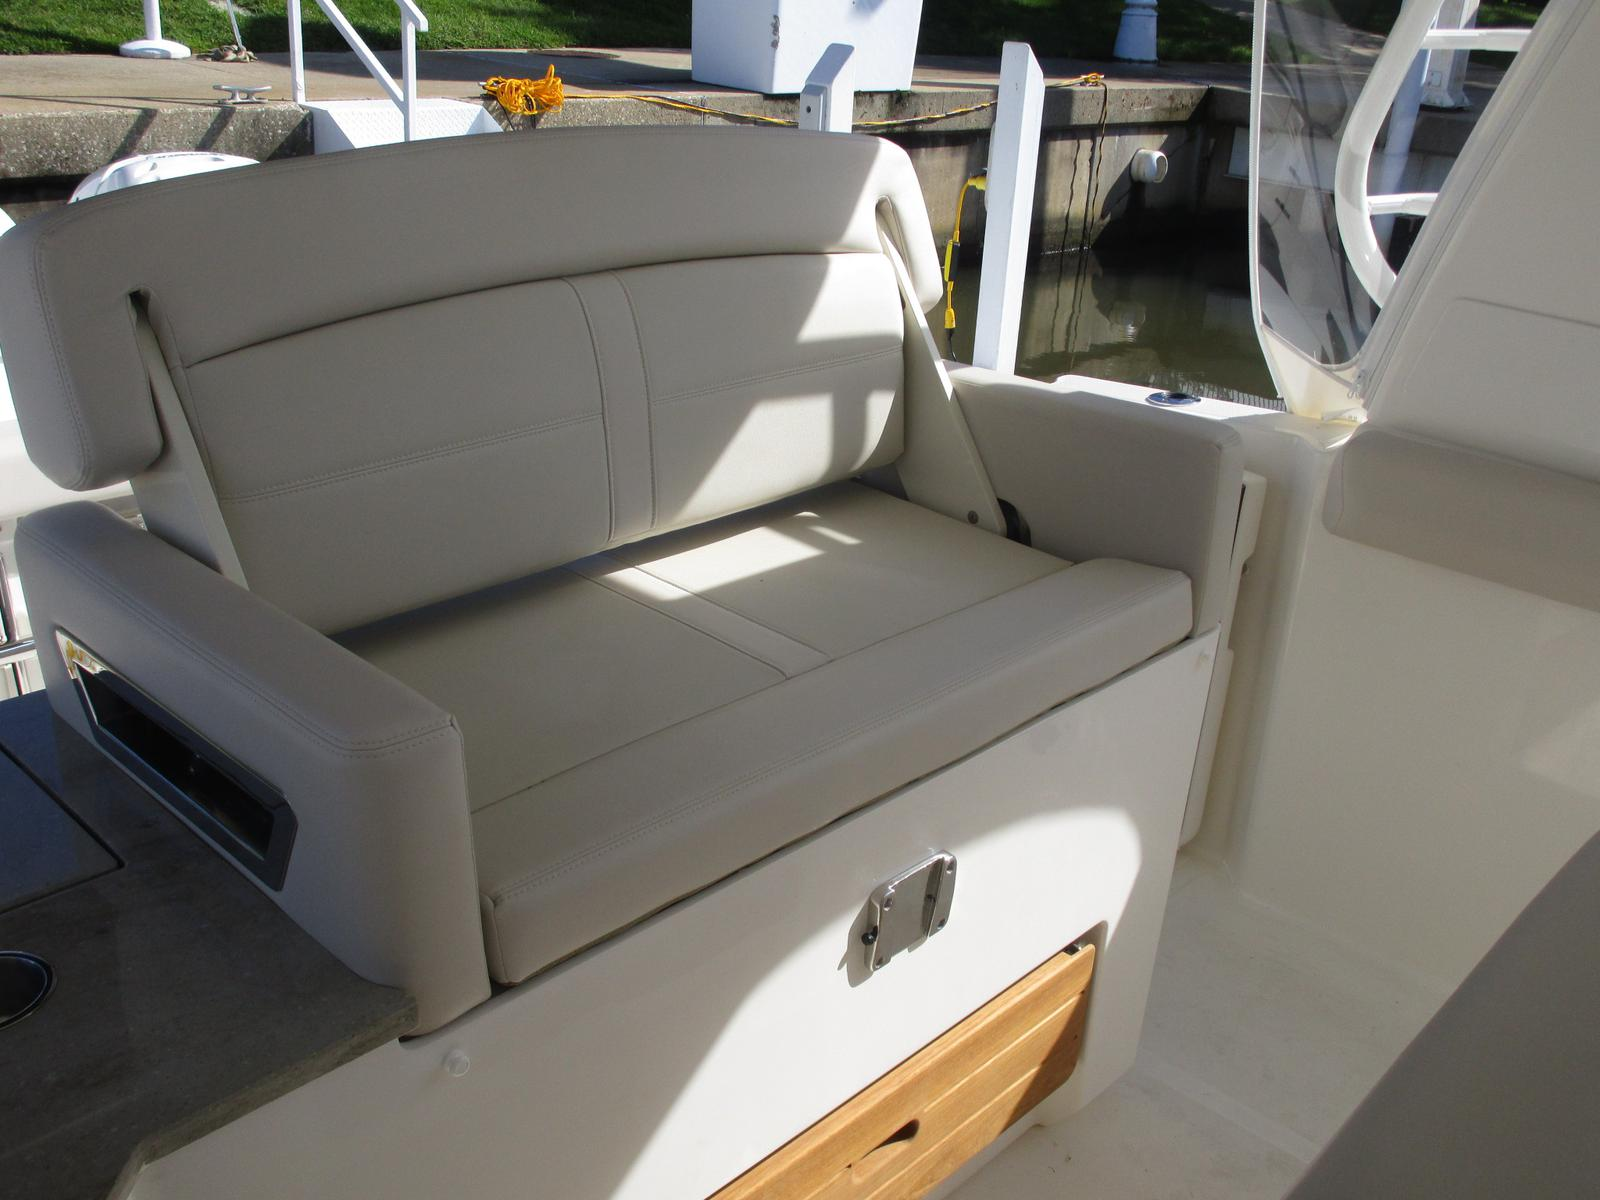 2019 Boston Whaler boat for sale, model of the boat is 350 Realm & Image # 9 of 10